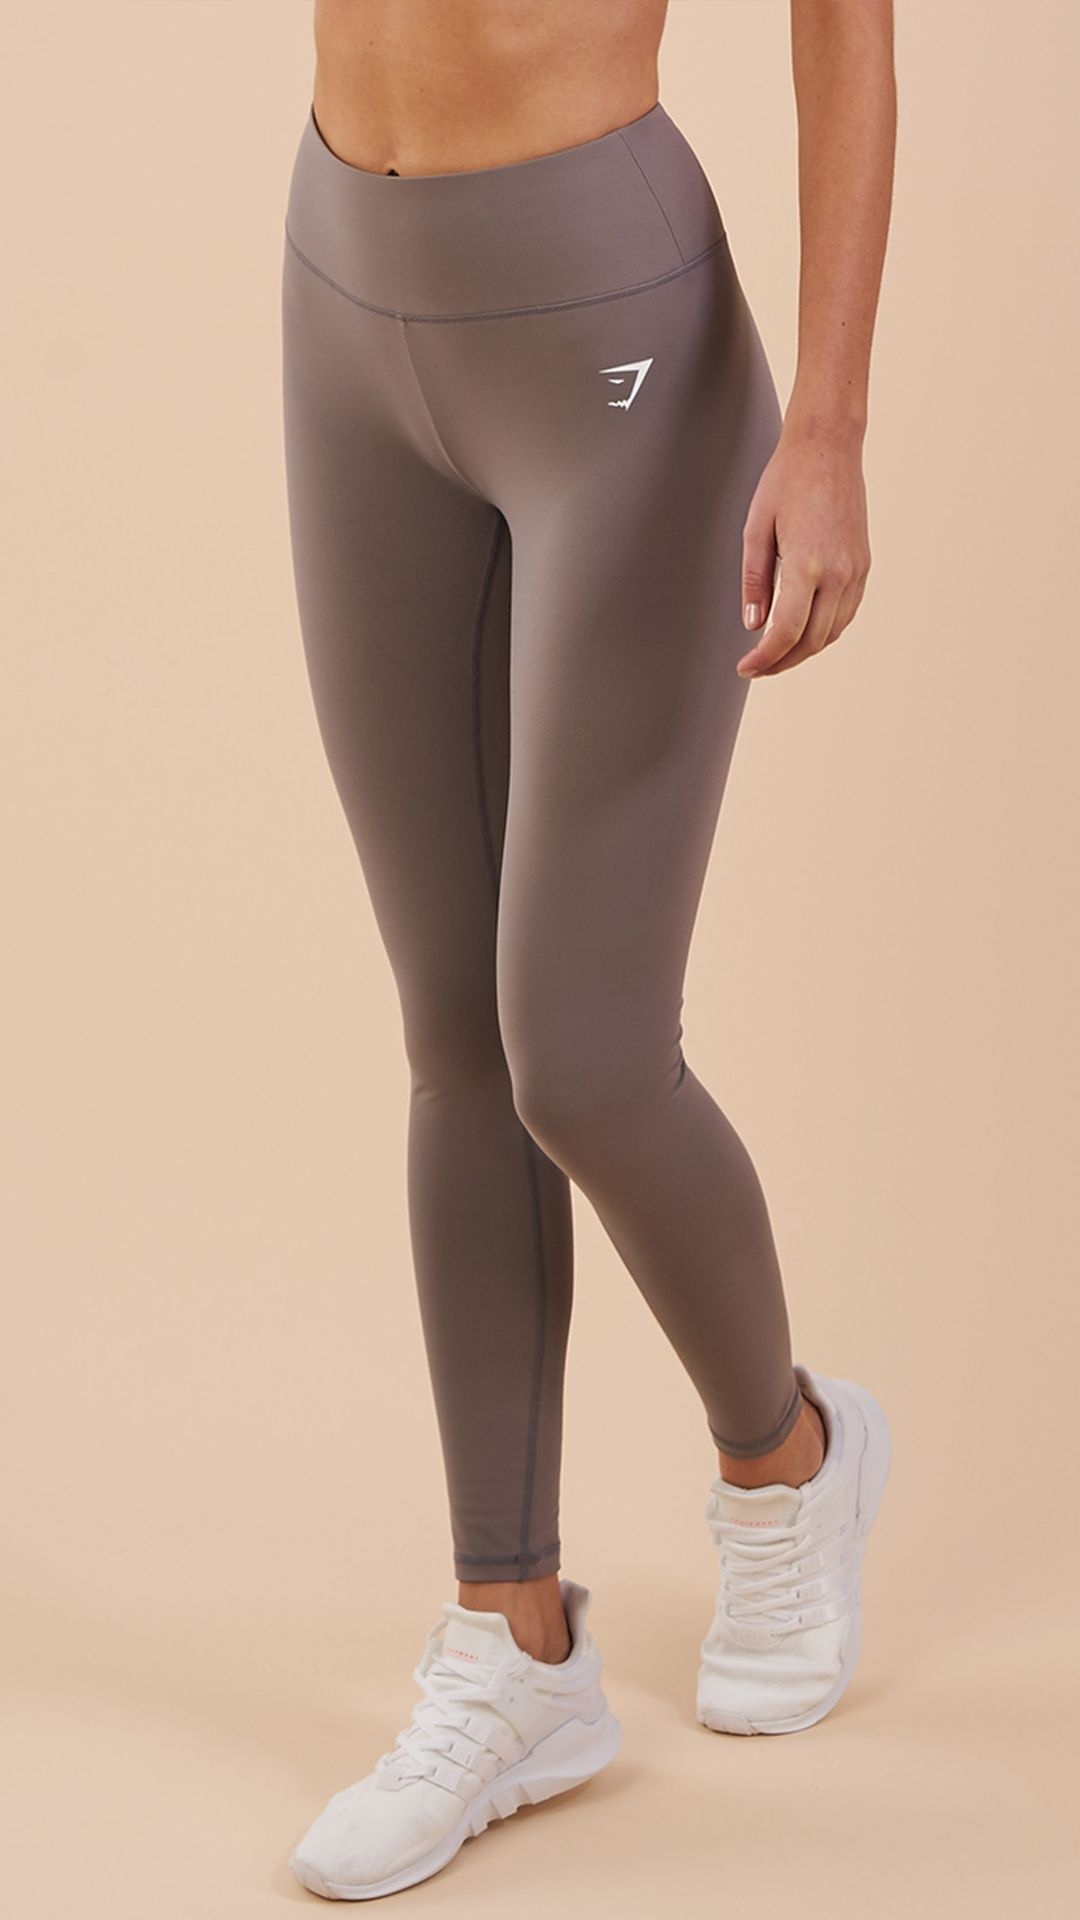 40fe351e16 Your next must-have workout wardrobe addition. The Women's Dreamy Leggings a  re so soft; they almost feel unreal.